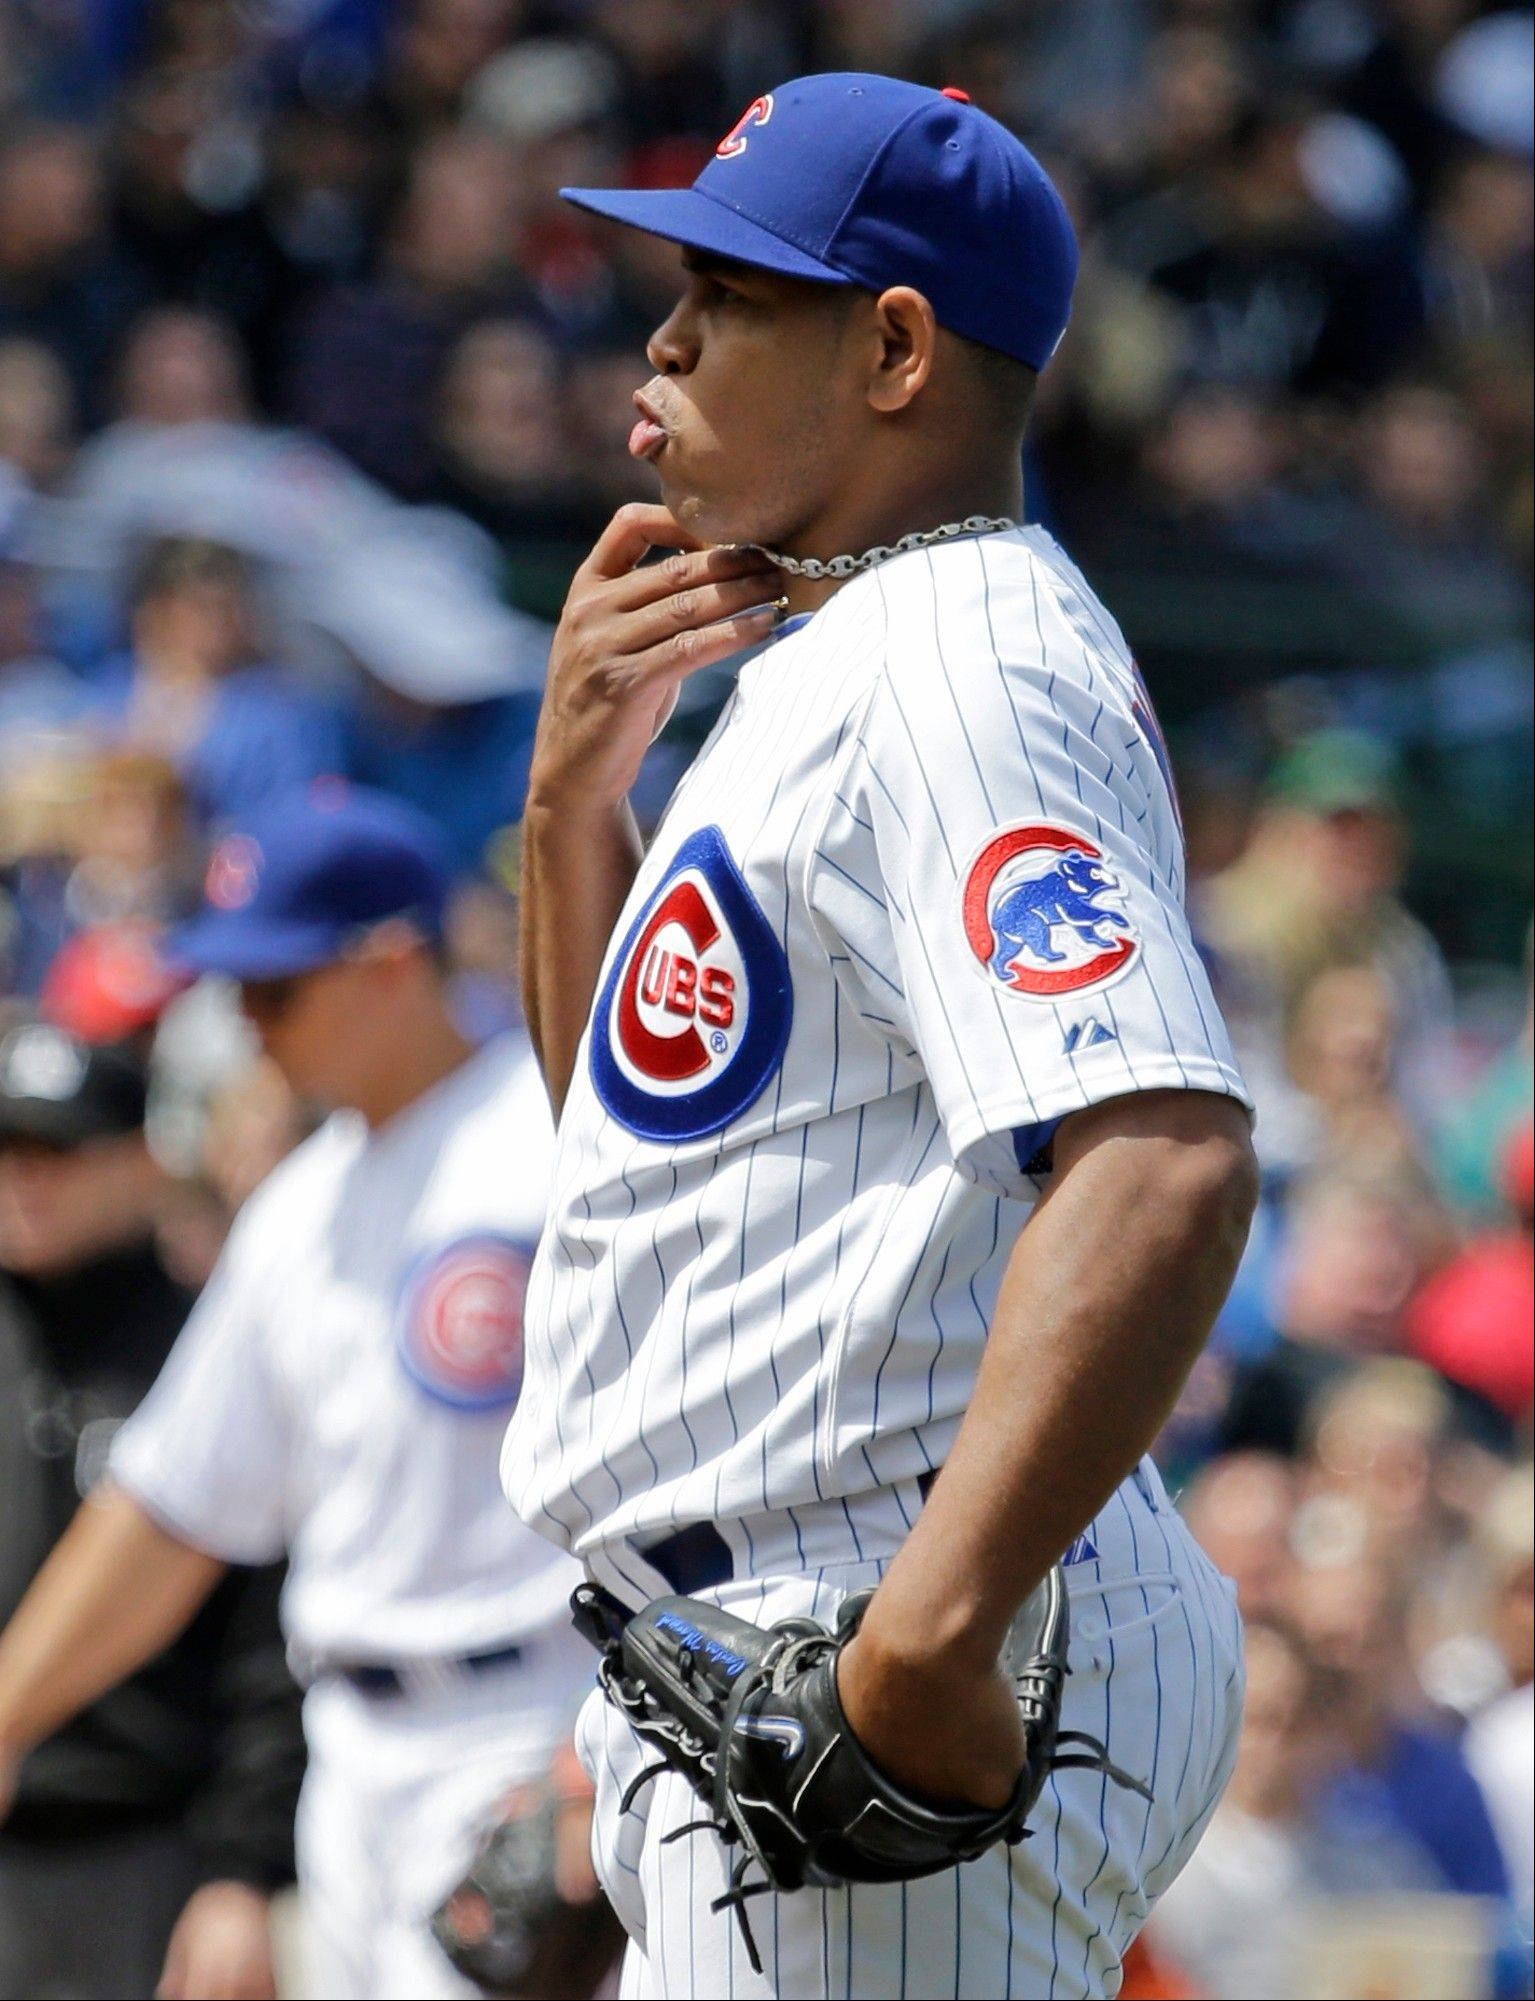 Carlos Marmol reacts reacts after he walked Joey Votto during the eighth inning Saturday at Wrigley Field. Marmol has walked 12 and hit three batters in just 112⁄3 innings.